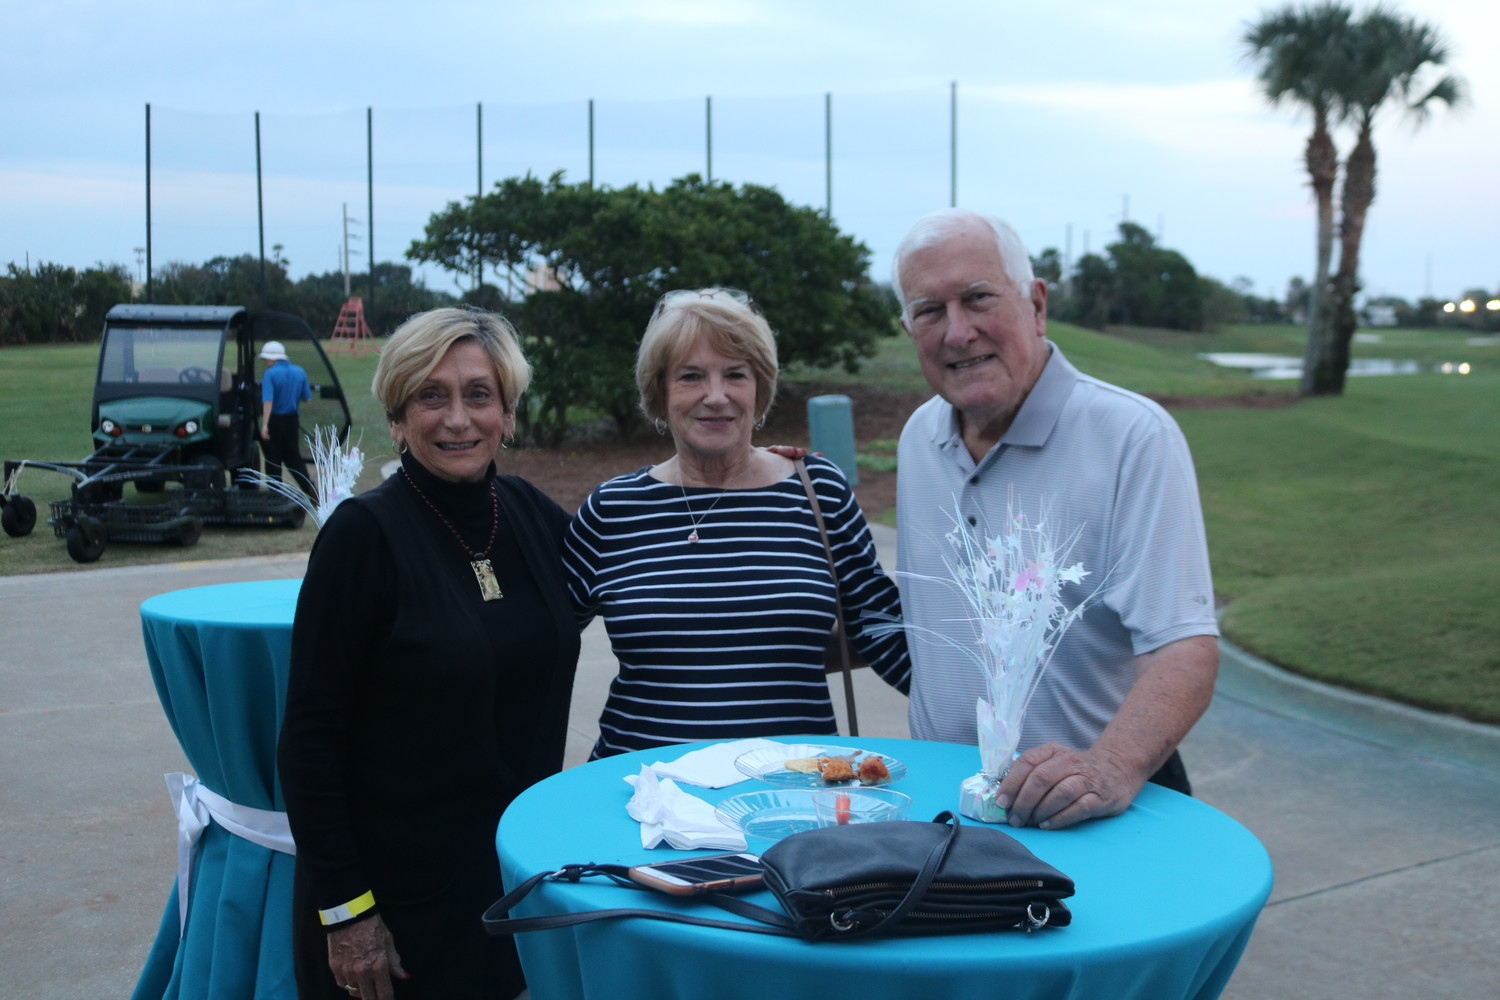 Alaine Brown, Kathy Wiedegreen and Dick Brown